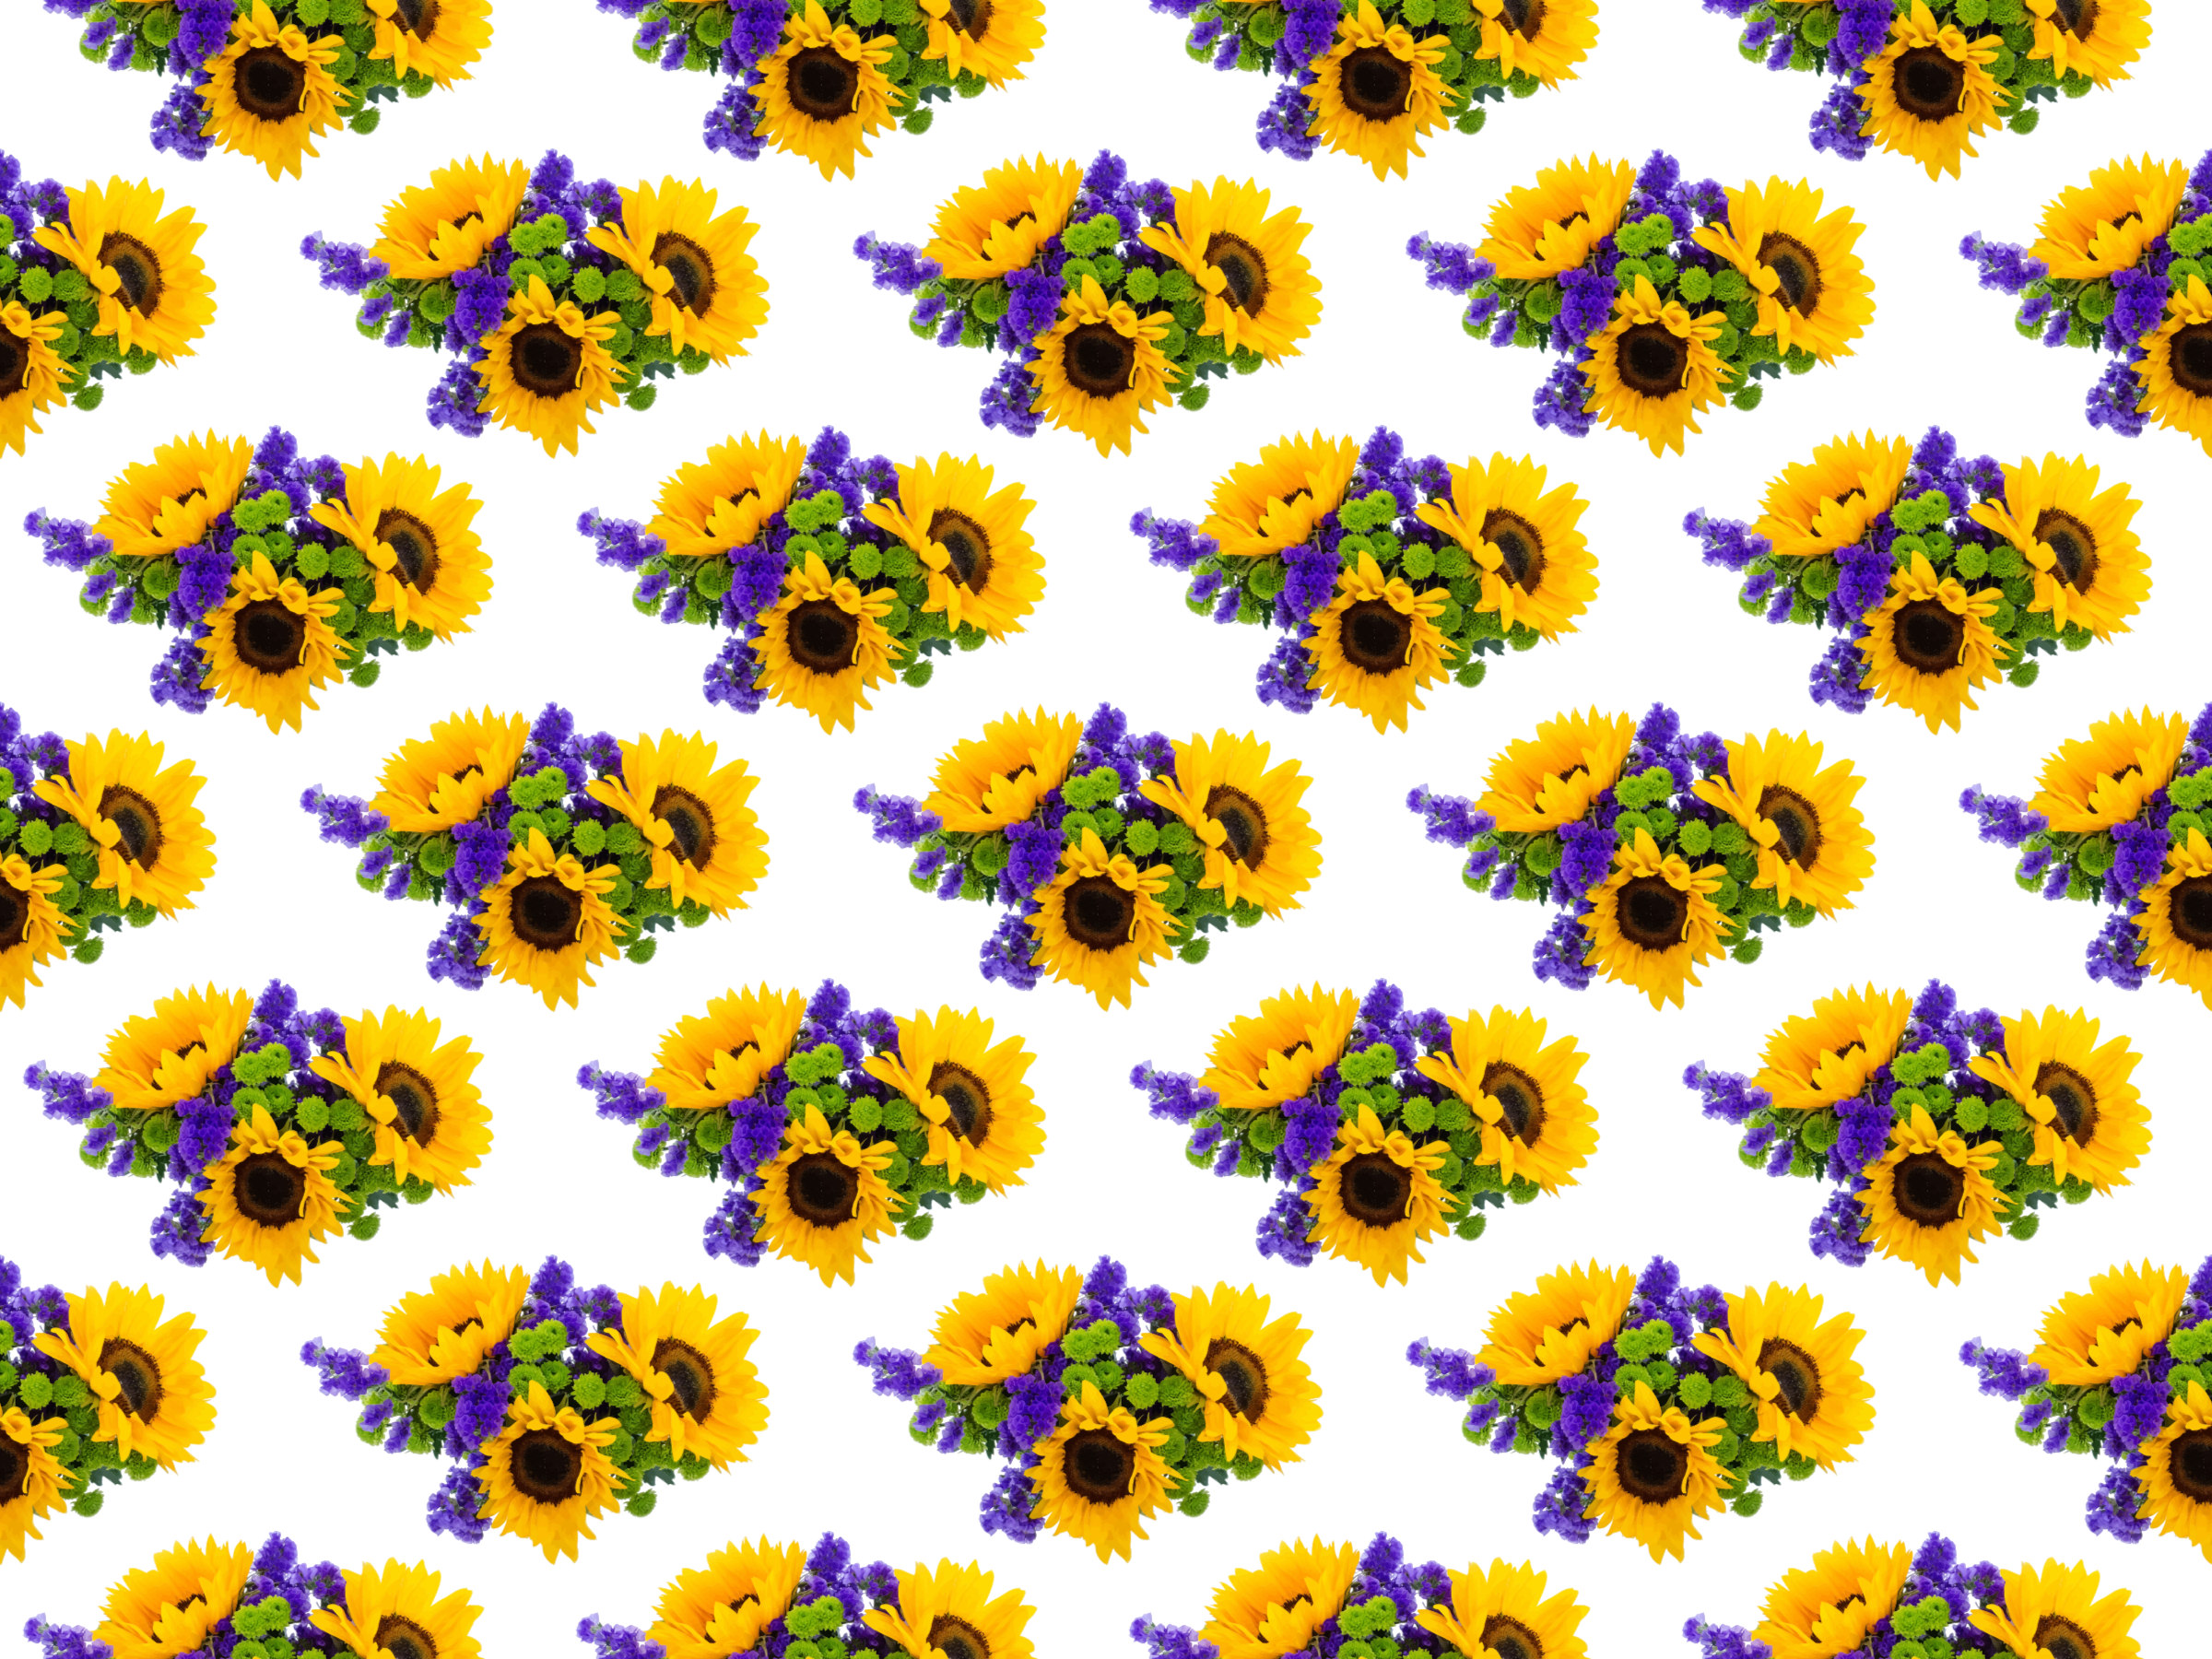 Flower pattern 6 by Firkin